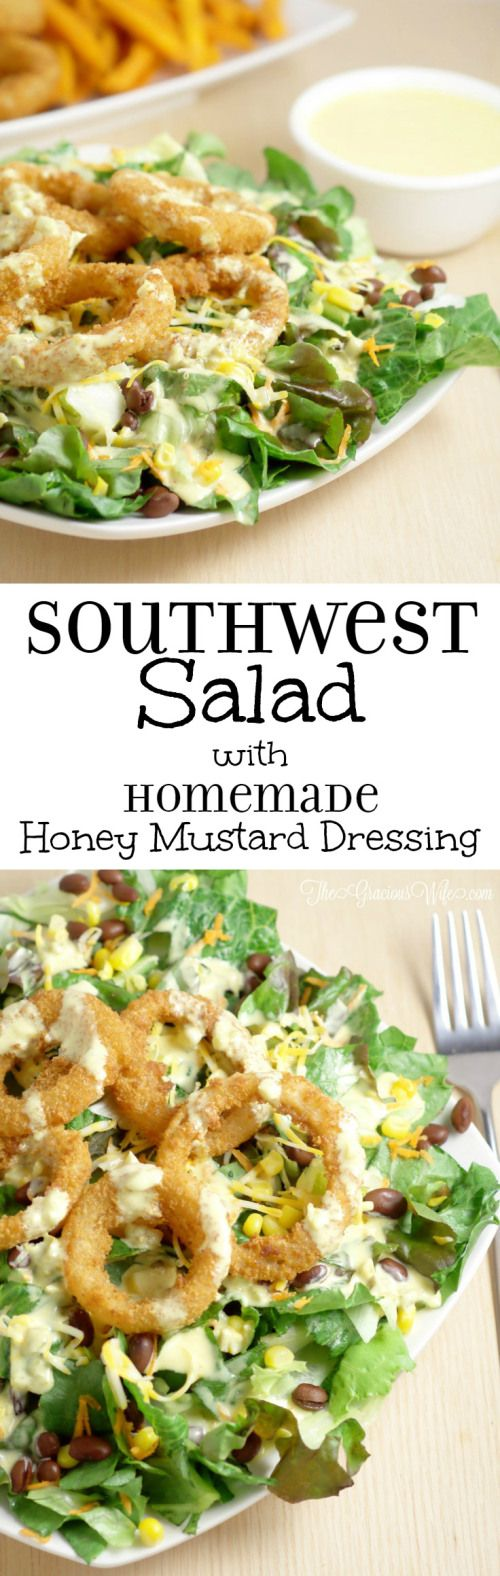 Onion Ring Southwest Salad Recipe with Spicy Honey Mustard Dressing Recipe - an easy salad recipe that's perfect for lunch or dinner.